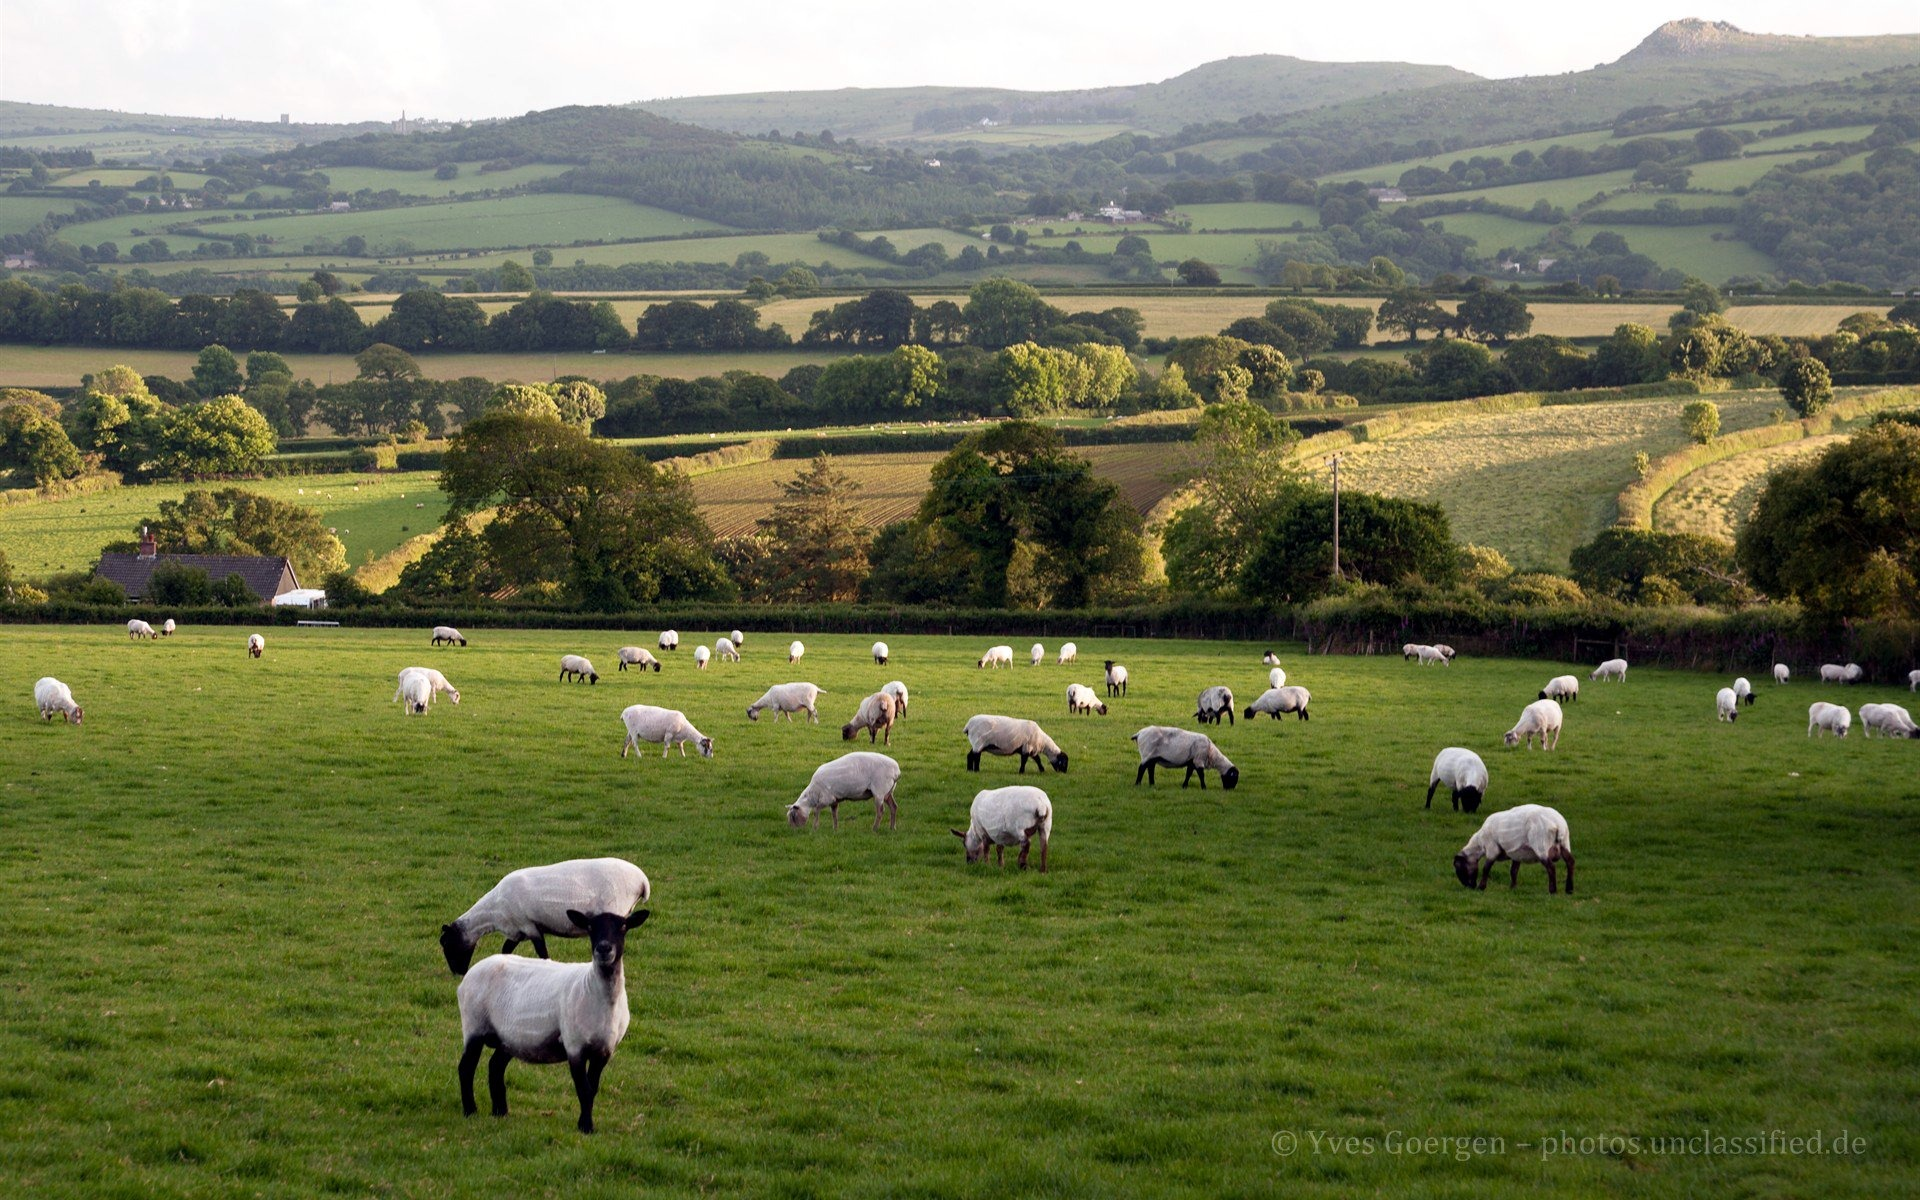 Ireland Fall Wallpaper Sheep Wallpaper 1920x1200 Download 10wallpaper Com